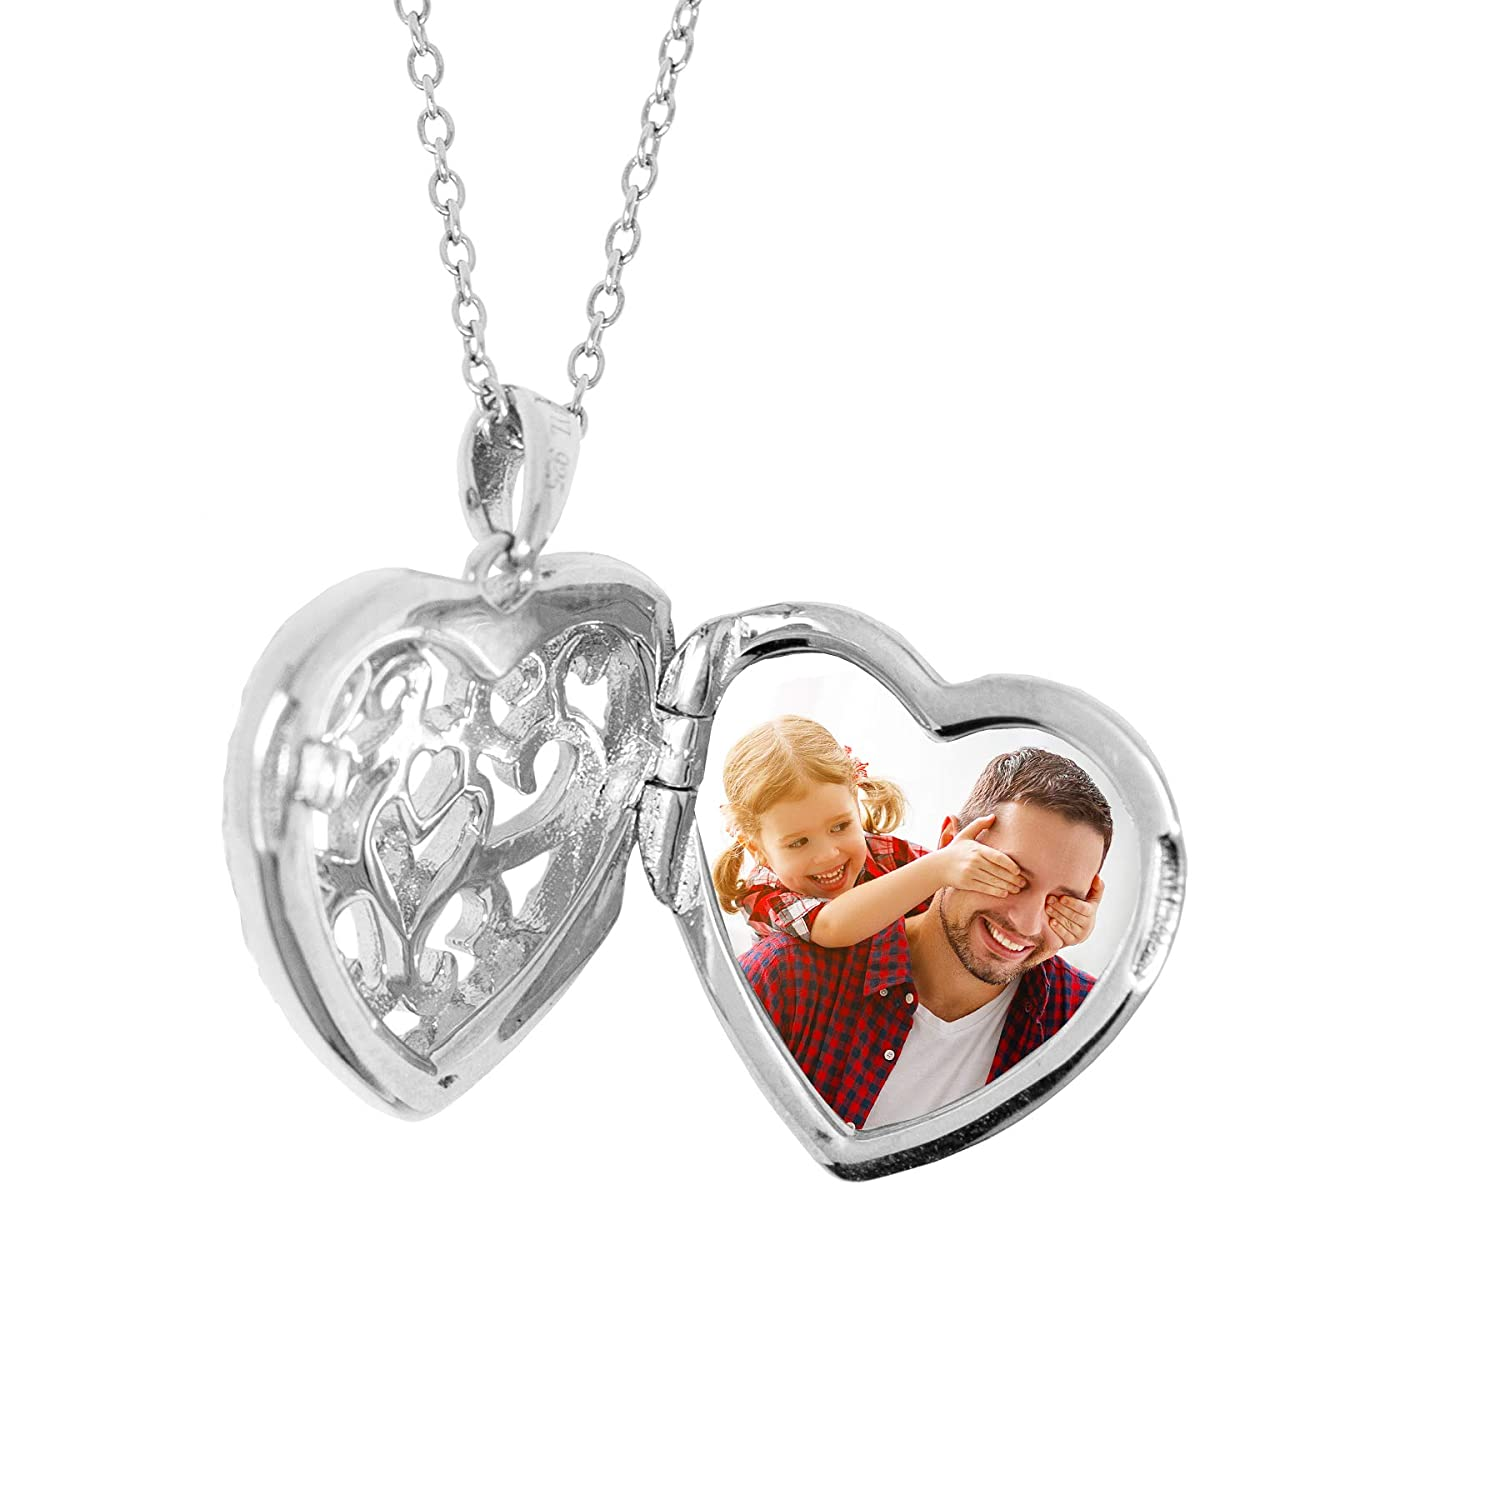 With You Lockets-Fine Sterling Silver-Custom Photo Heart Locket  Necklace-That Holds Pictures for Women-The Mary